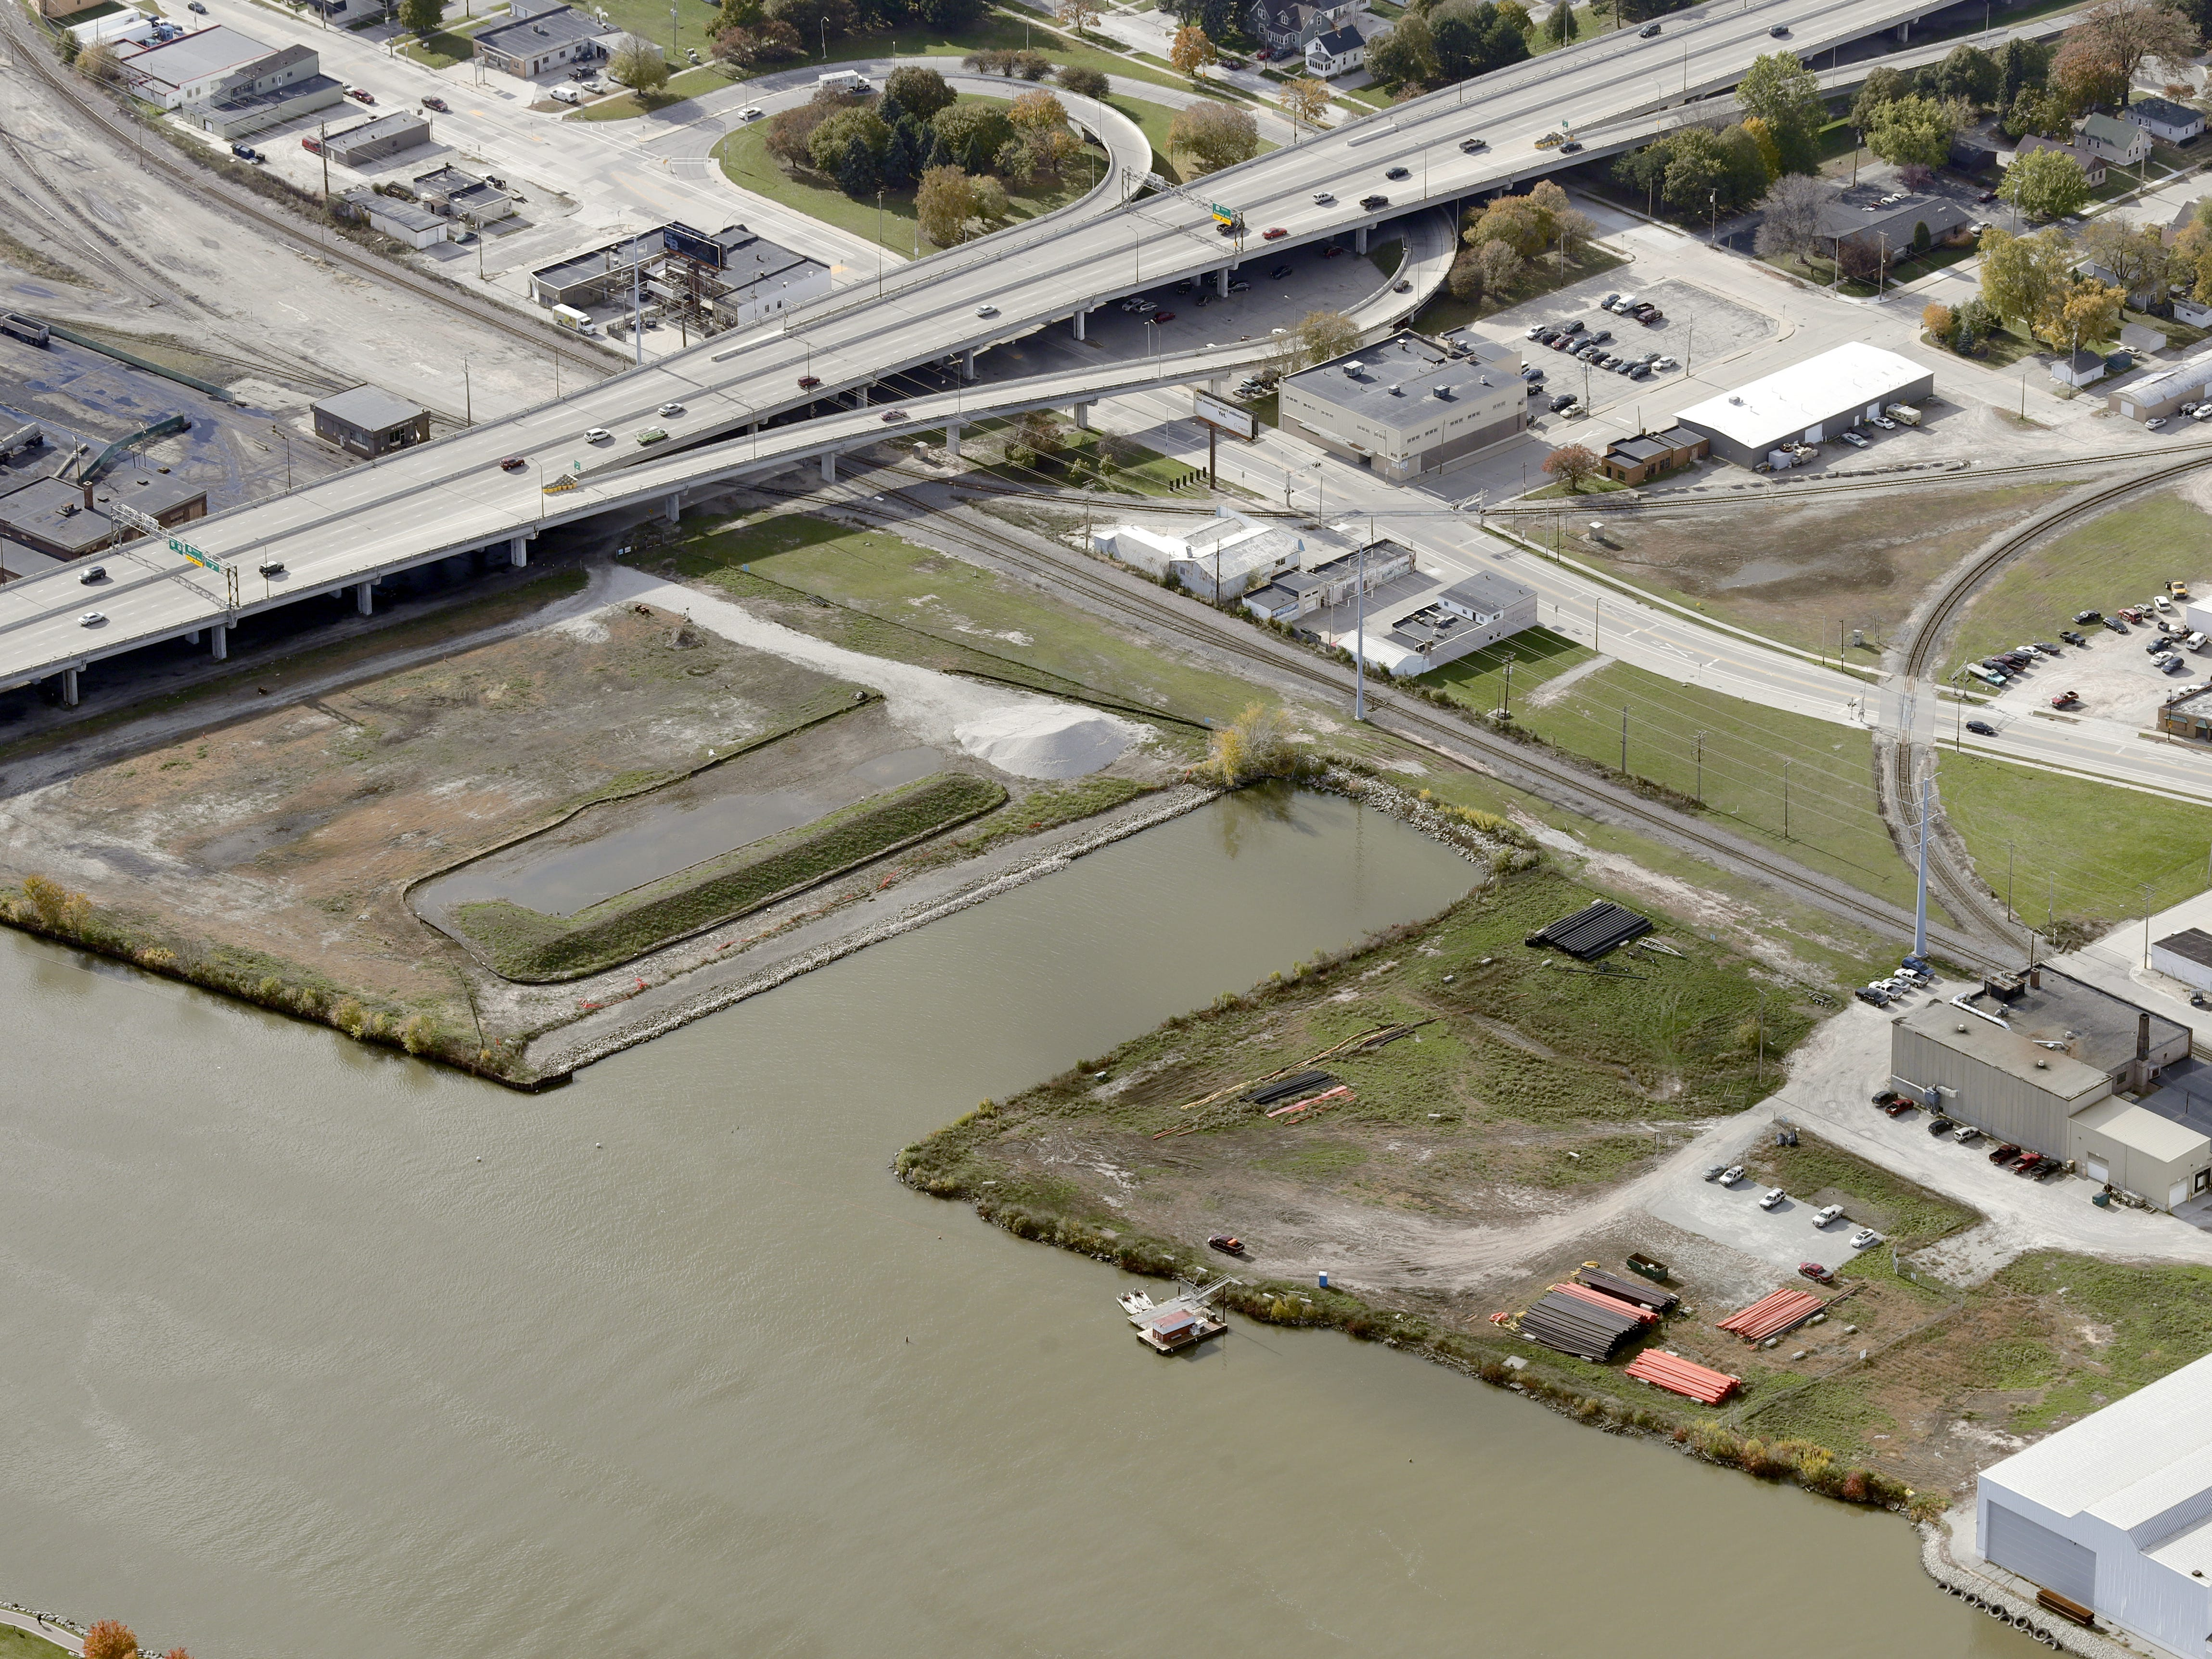 The Shipyard site in downtown Green Bay, future home to Breakthrough Fuels headquarters on the west bank of the Fox River